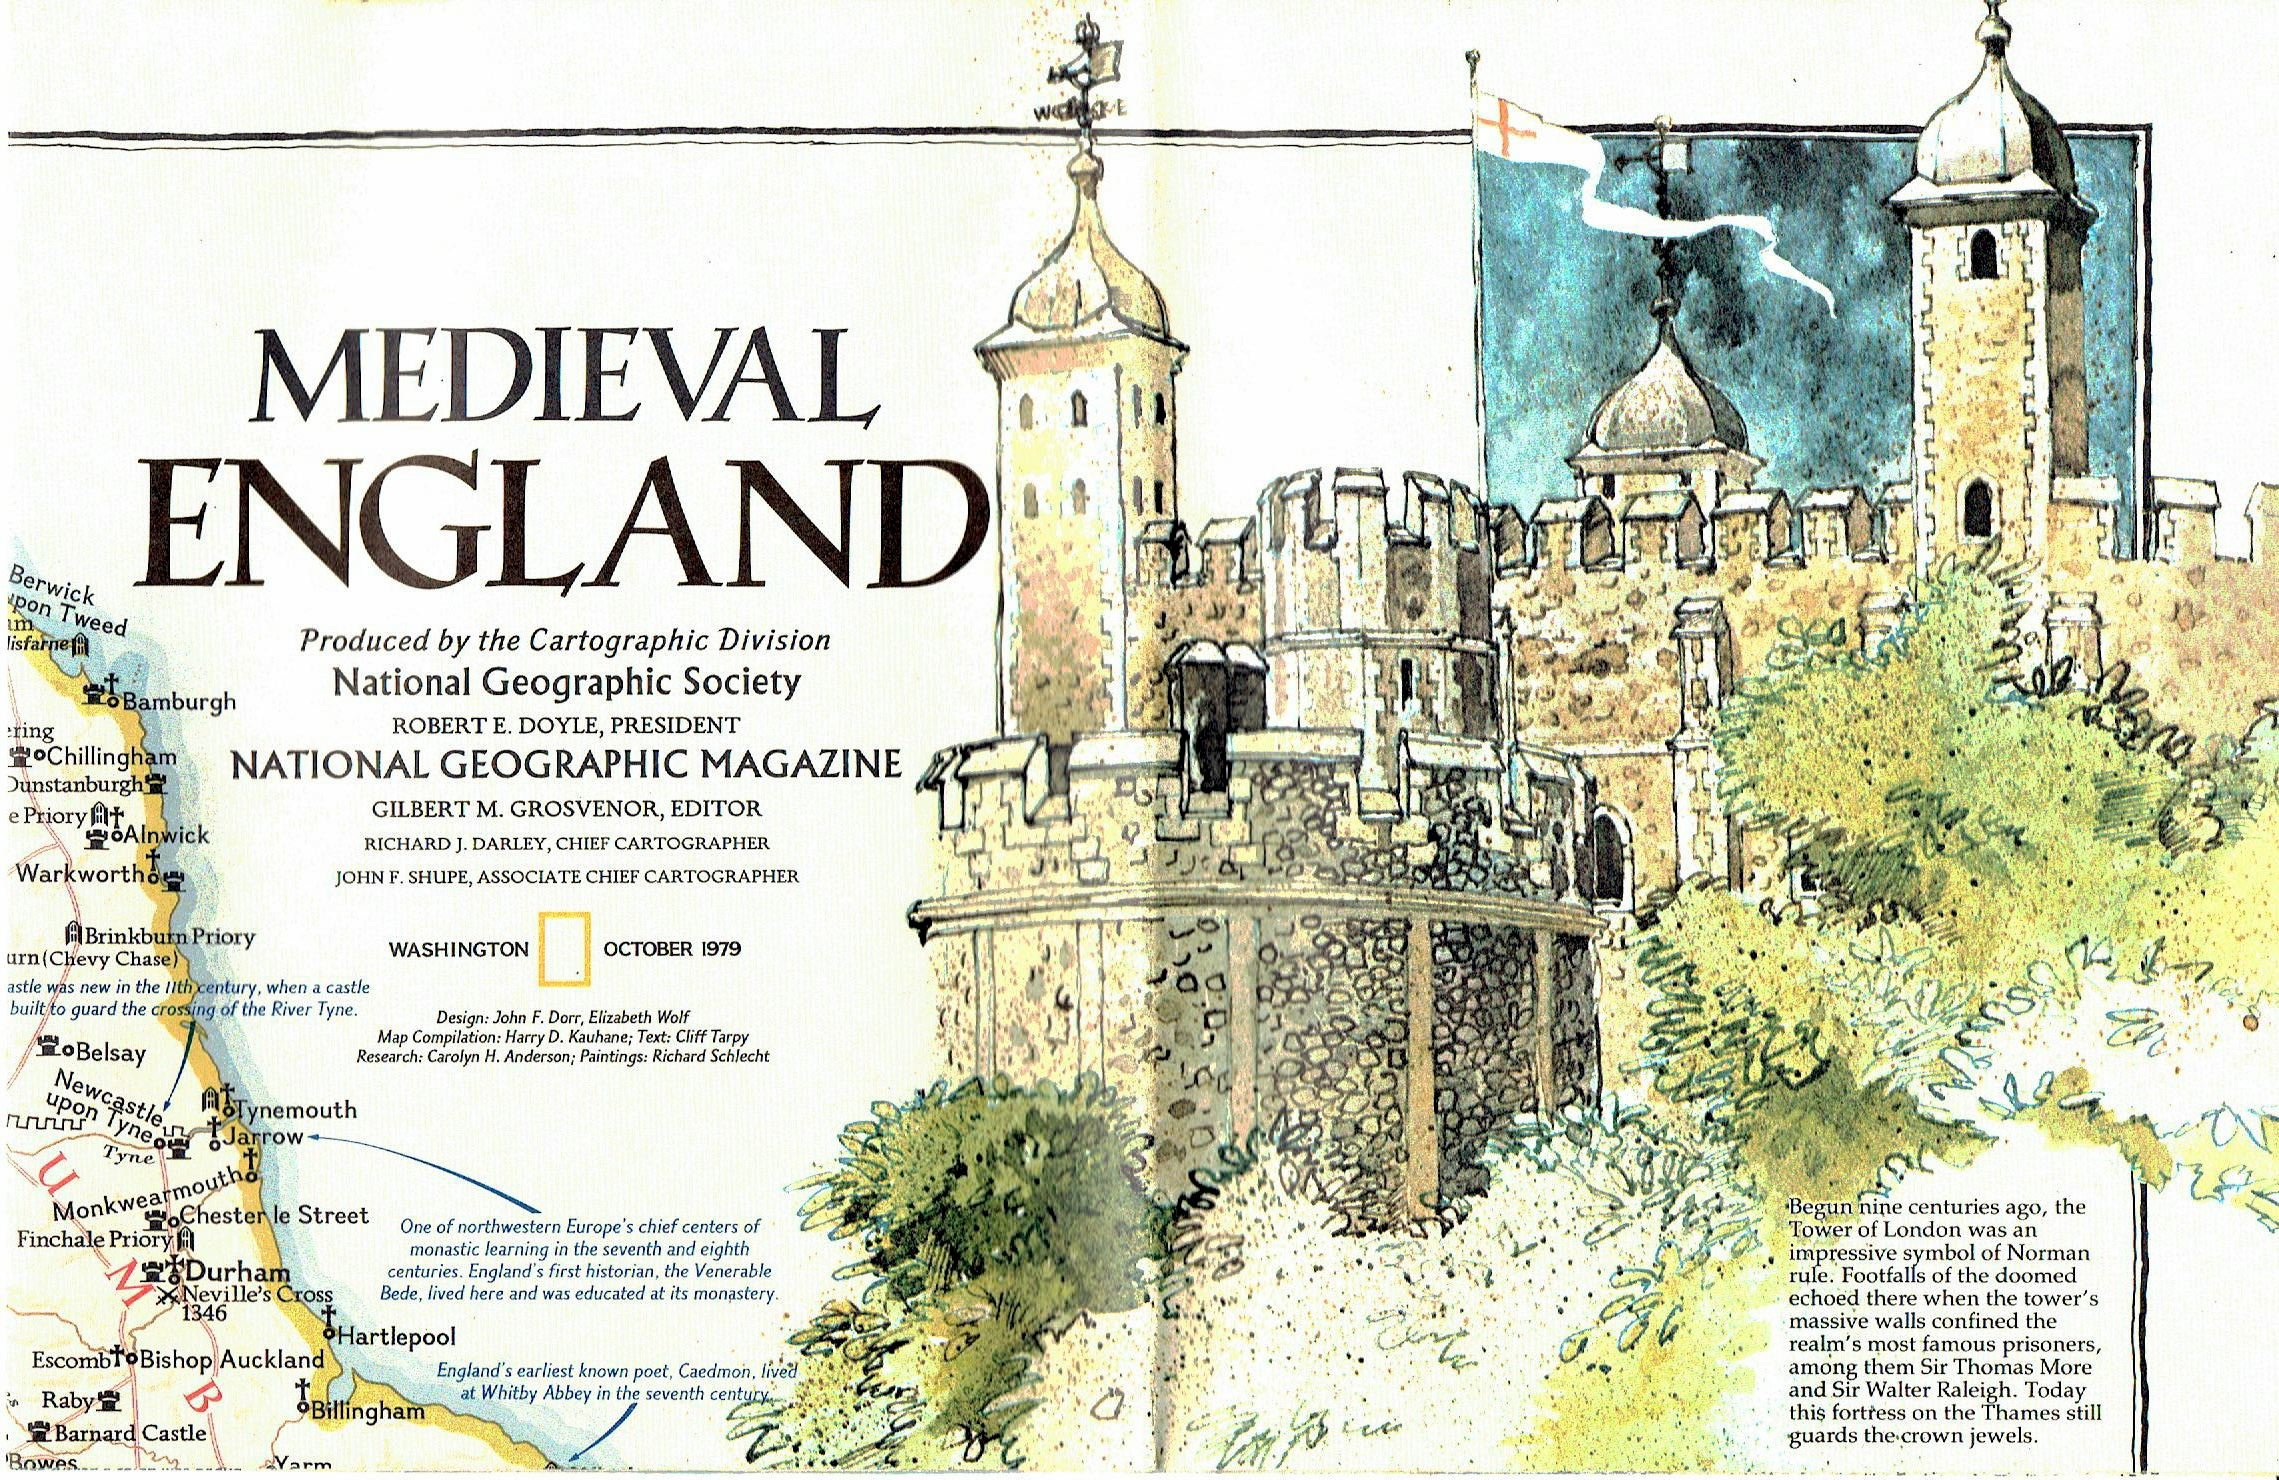 Medieval England/British Isles Map: National Geographic Society